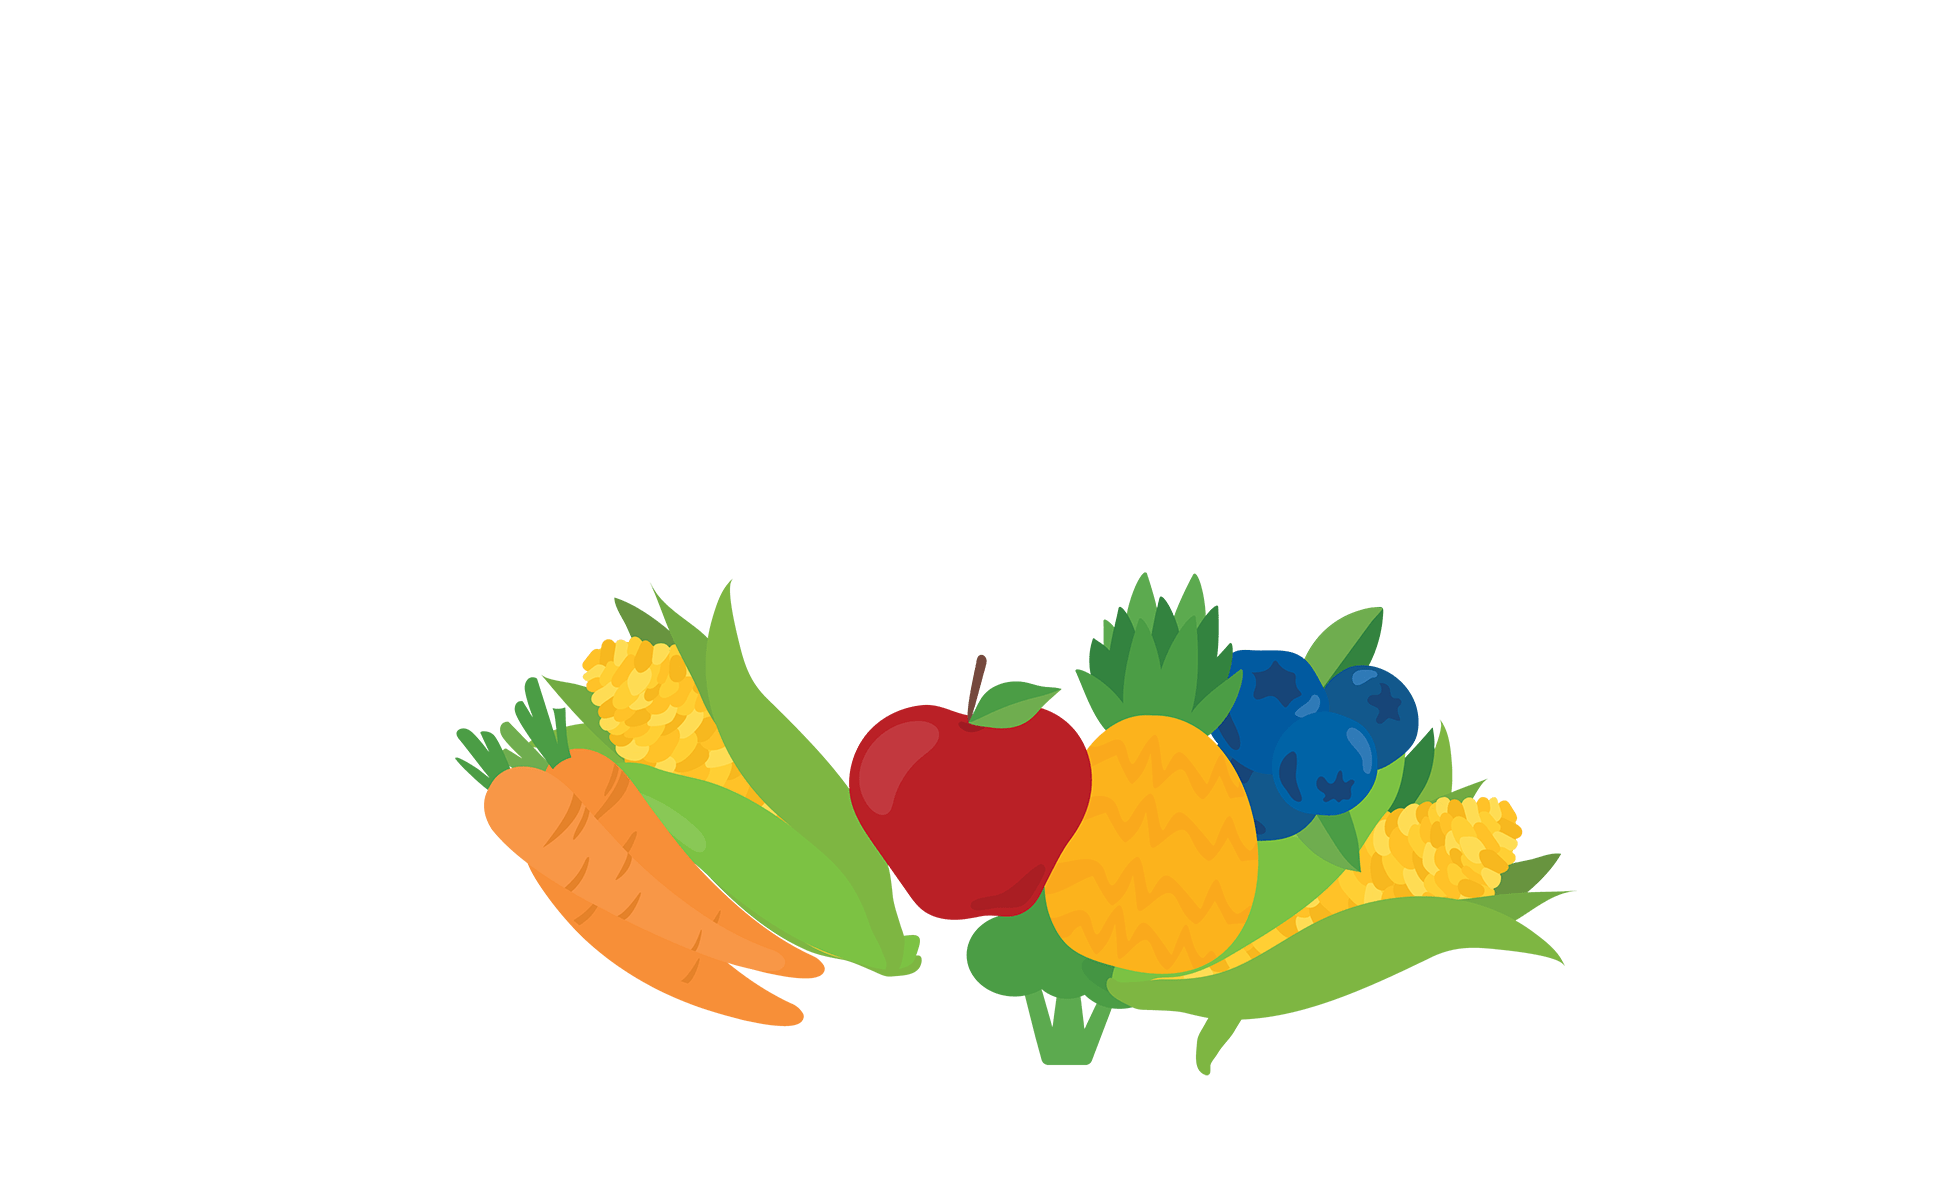 Grouping of fresh fruits and fresh vegetables